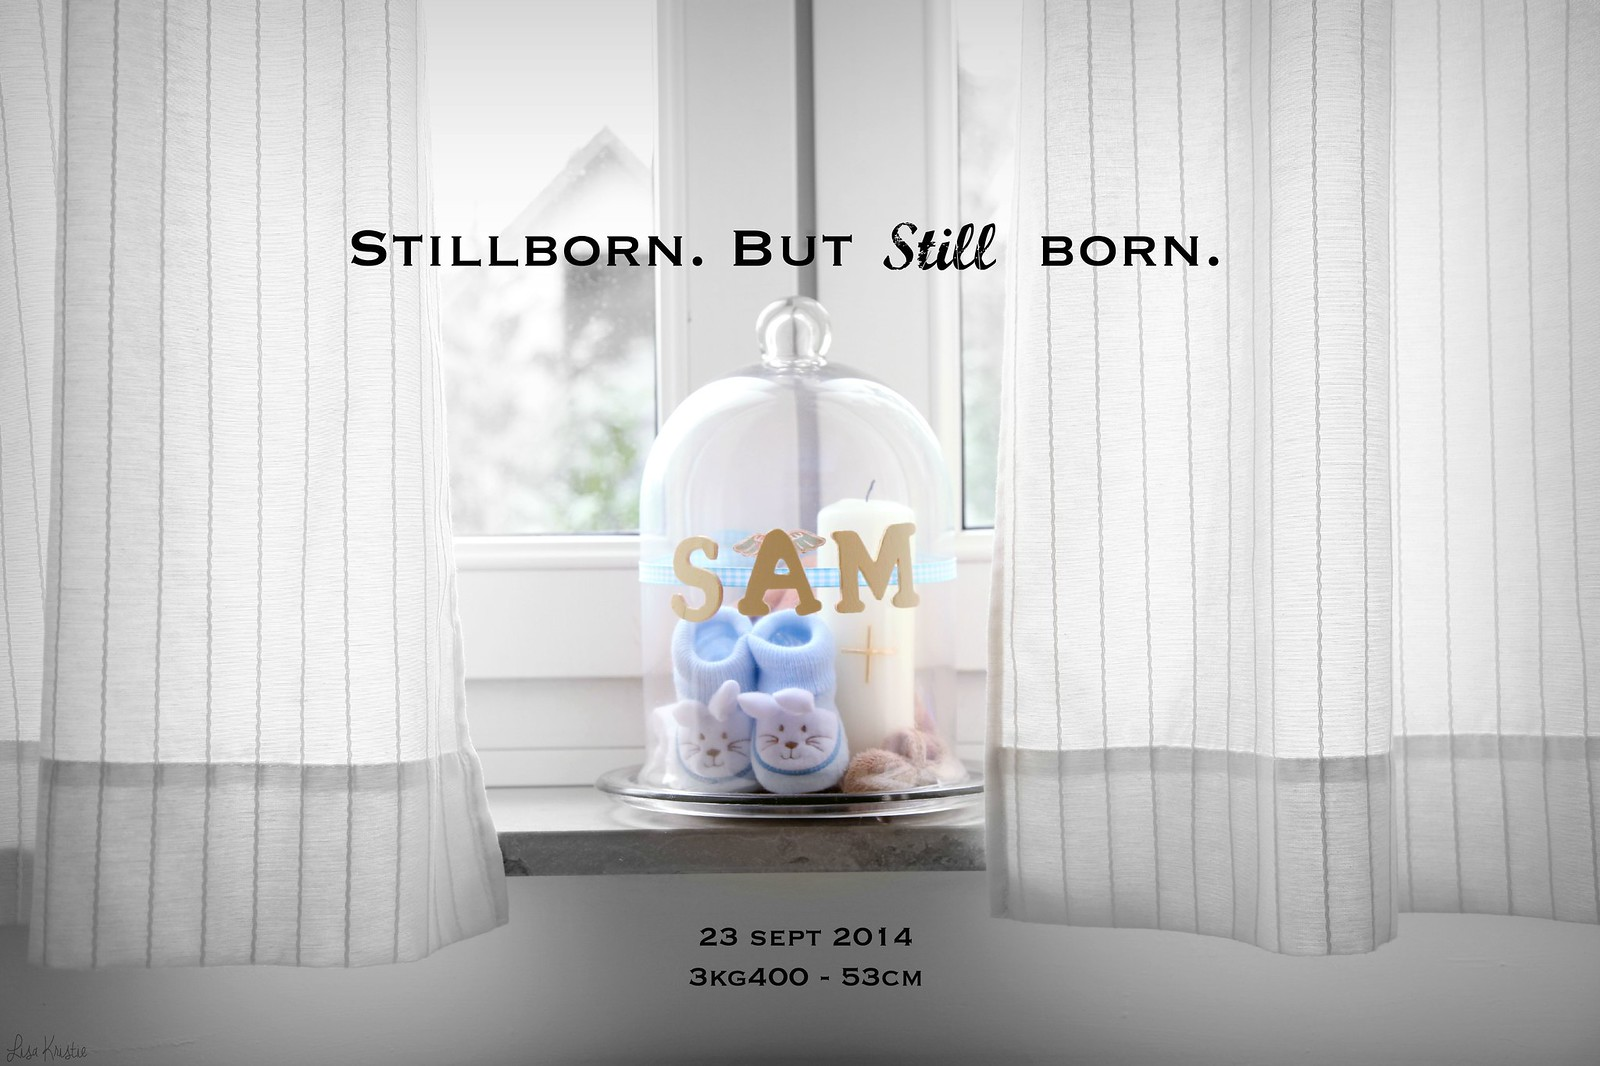 sam stillbirth stillborn born silent first year anniversary one birthday grieving loss baby